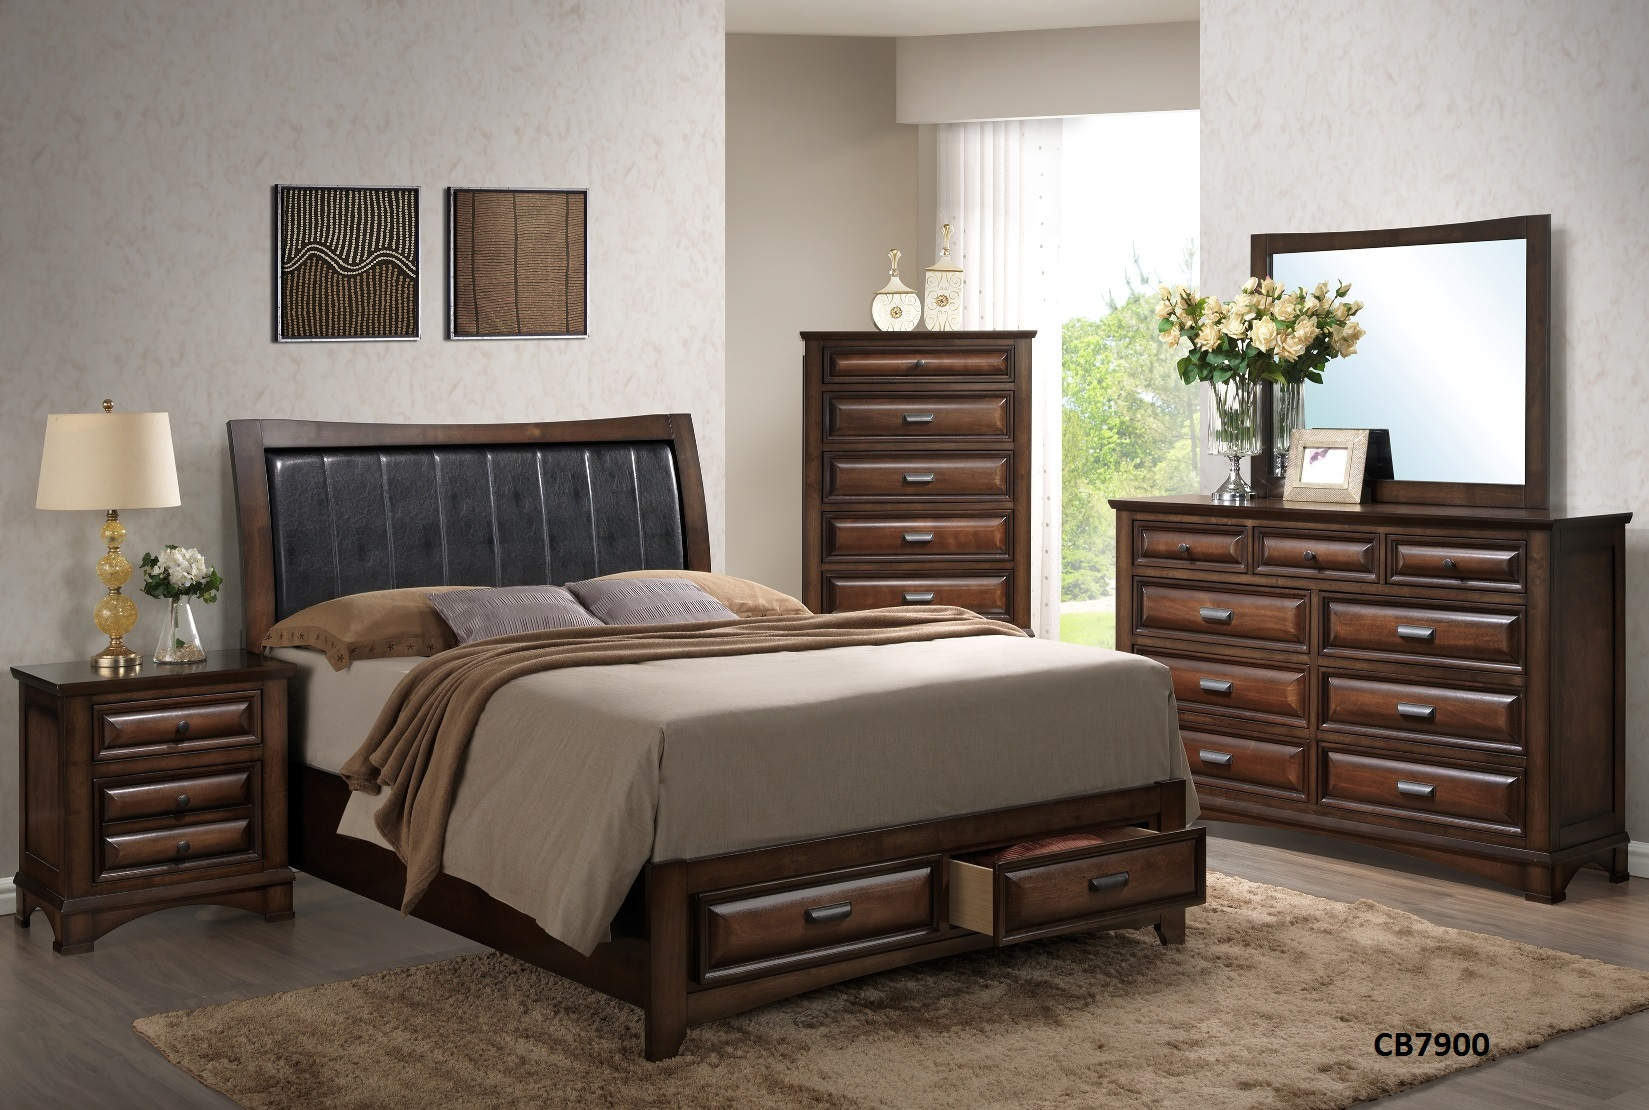 Bed Frame, Nightstand, Dresser, Mirror, mattress not included nor 5 chest drawer